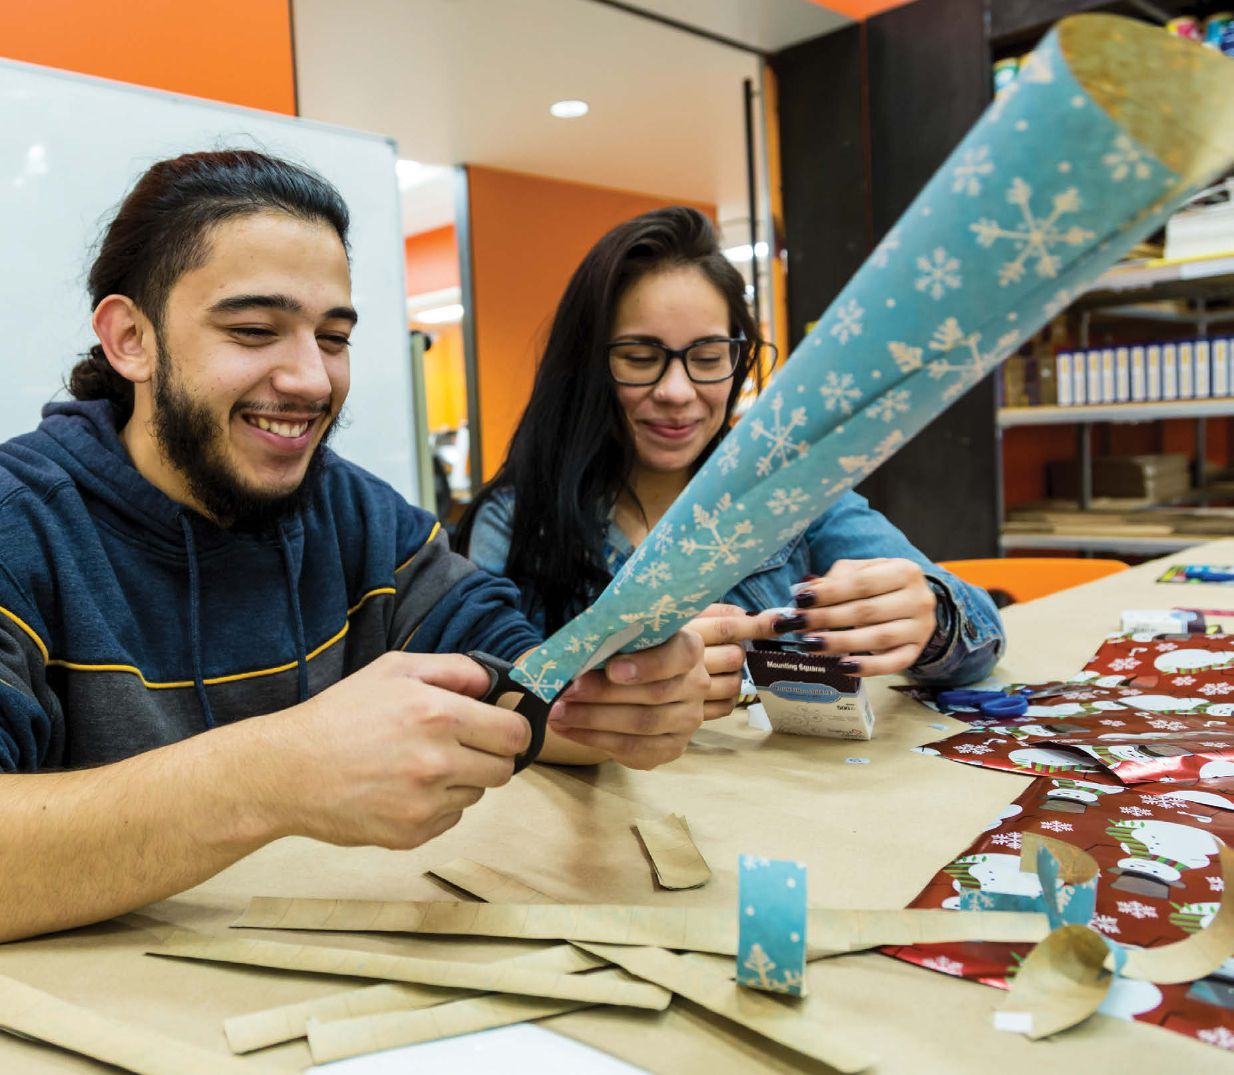 A young hispanic man and a young hispanic woman sit at a table with various wrapping paper smiling and making various crafts.